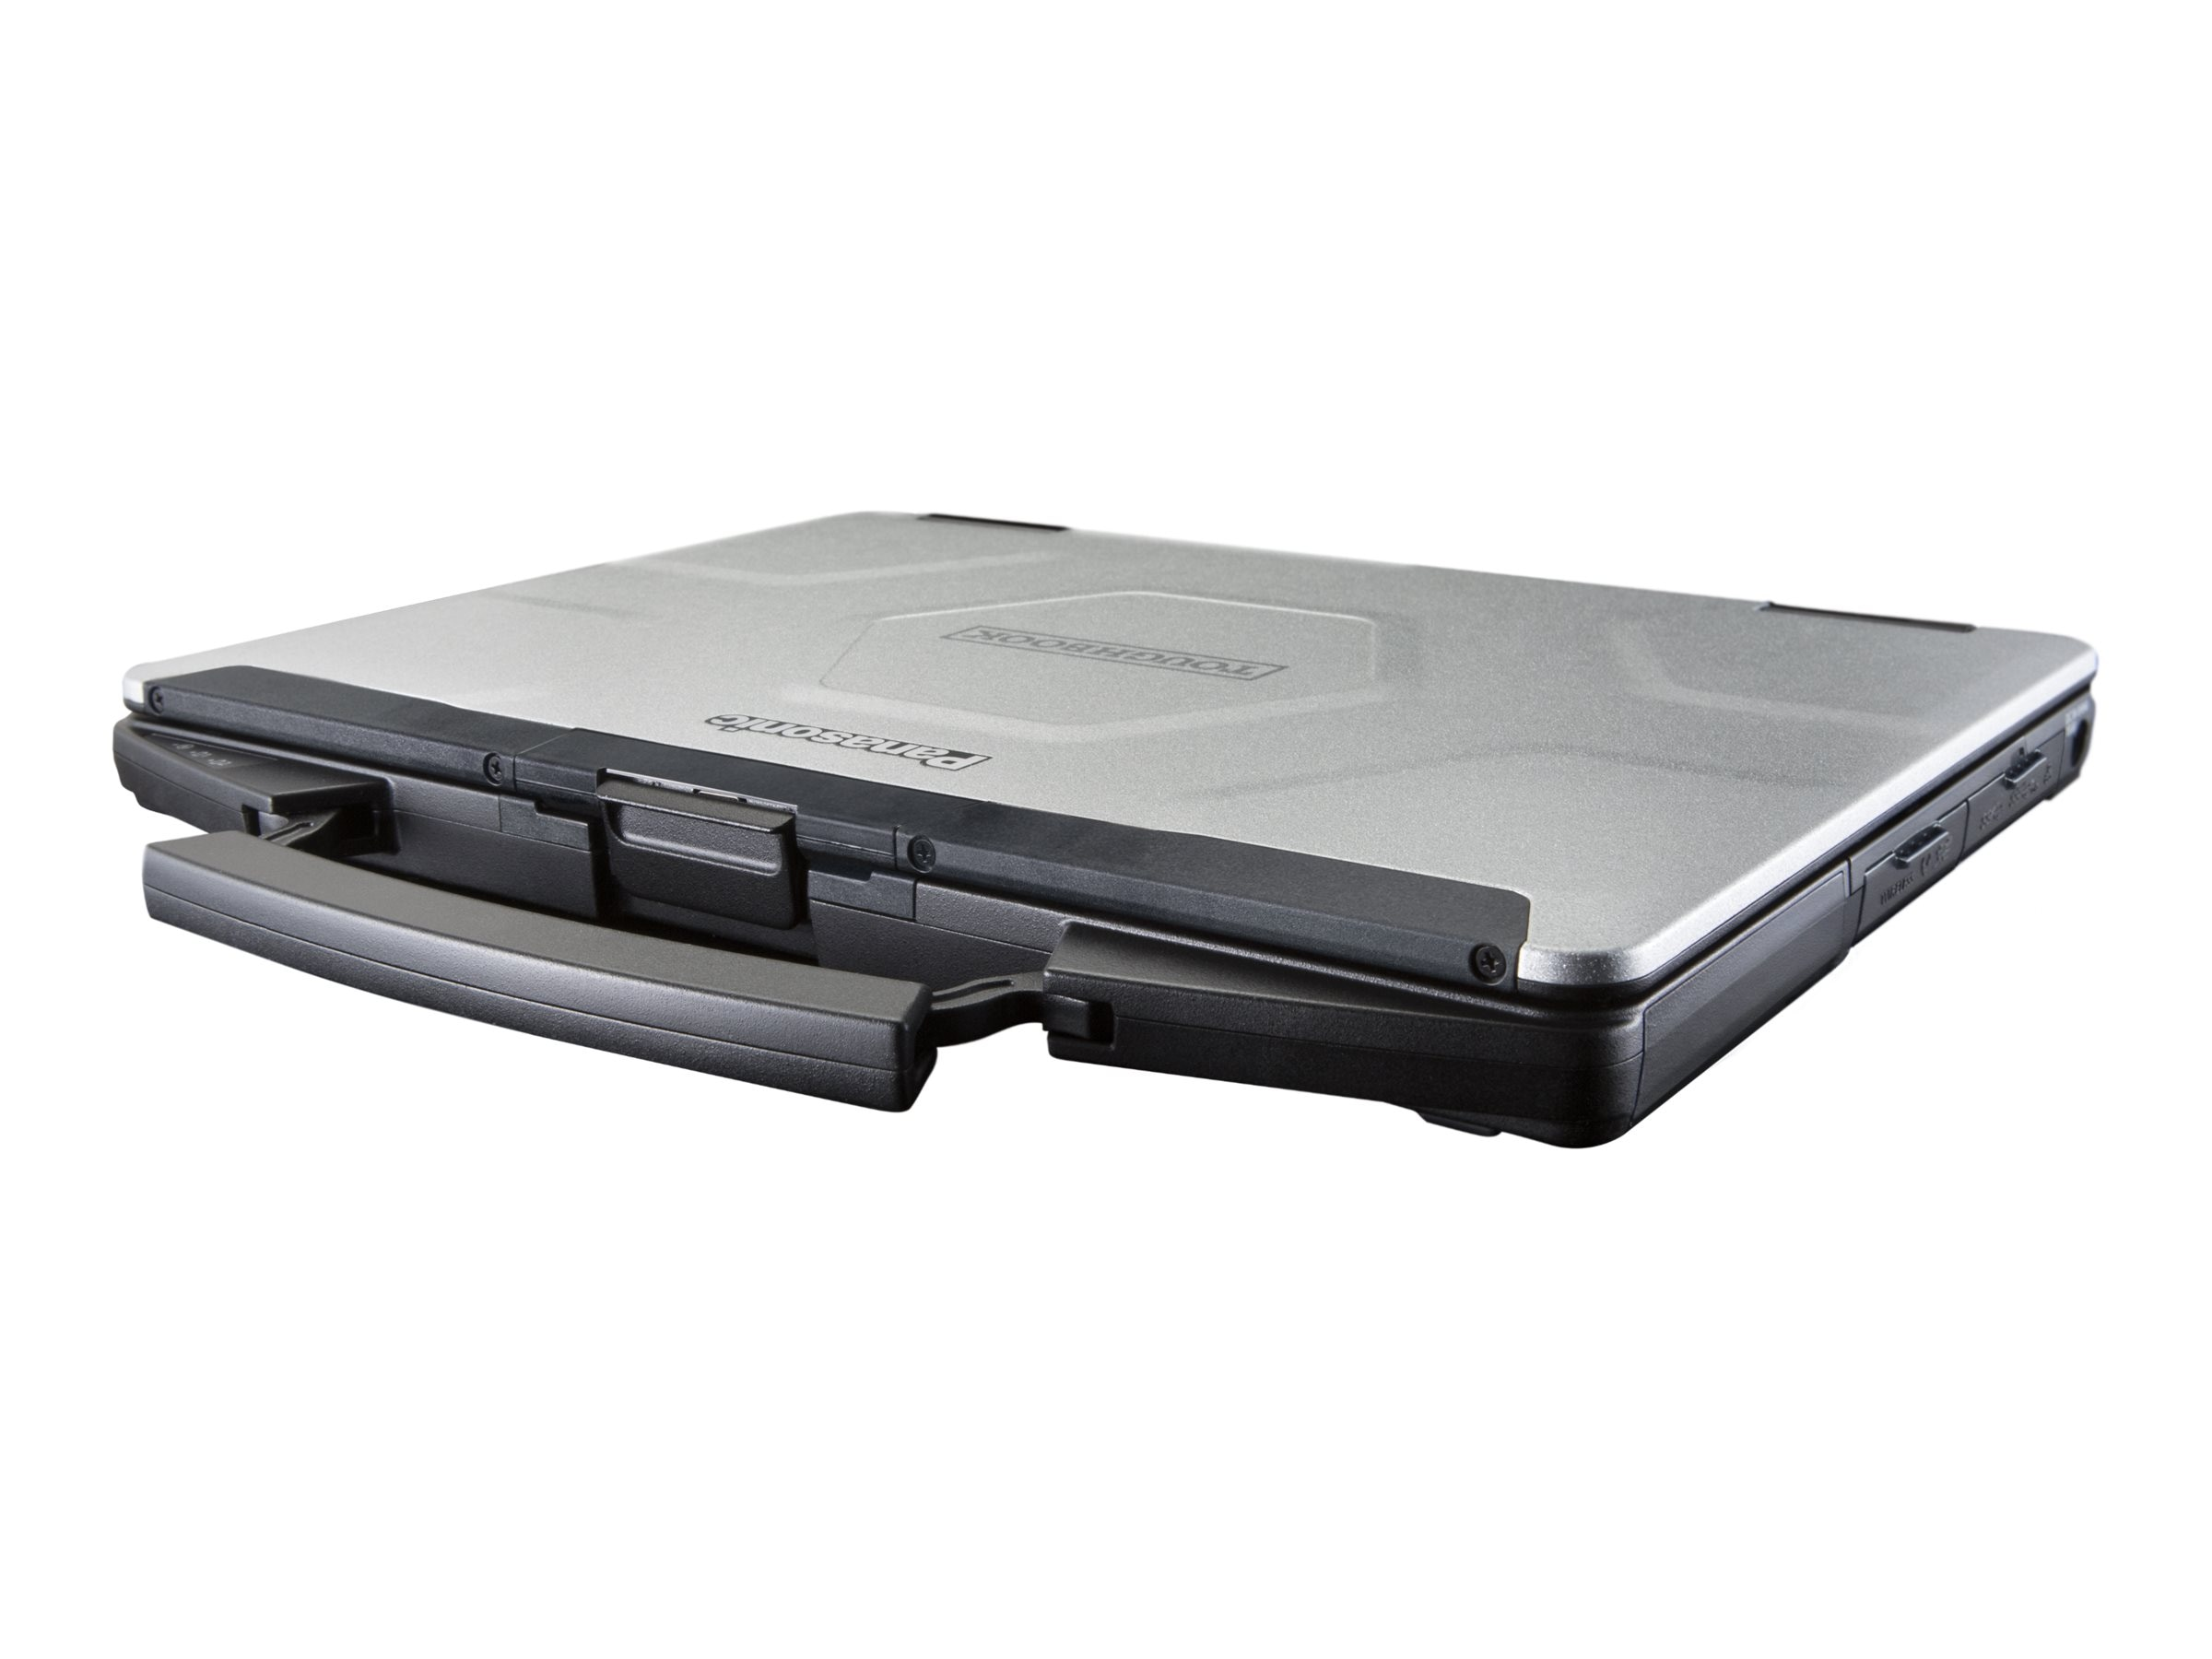 Panasonic Toughbook 54 8GB 512GB SSD 14 HD, CF-54DP094VM